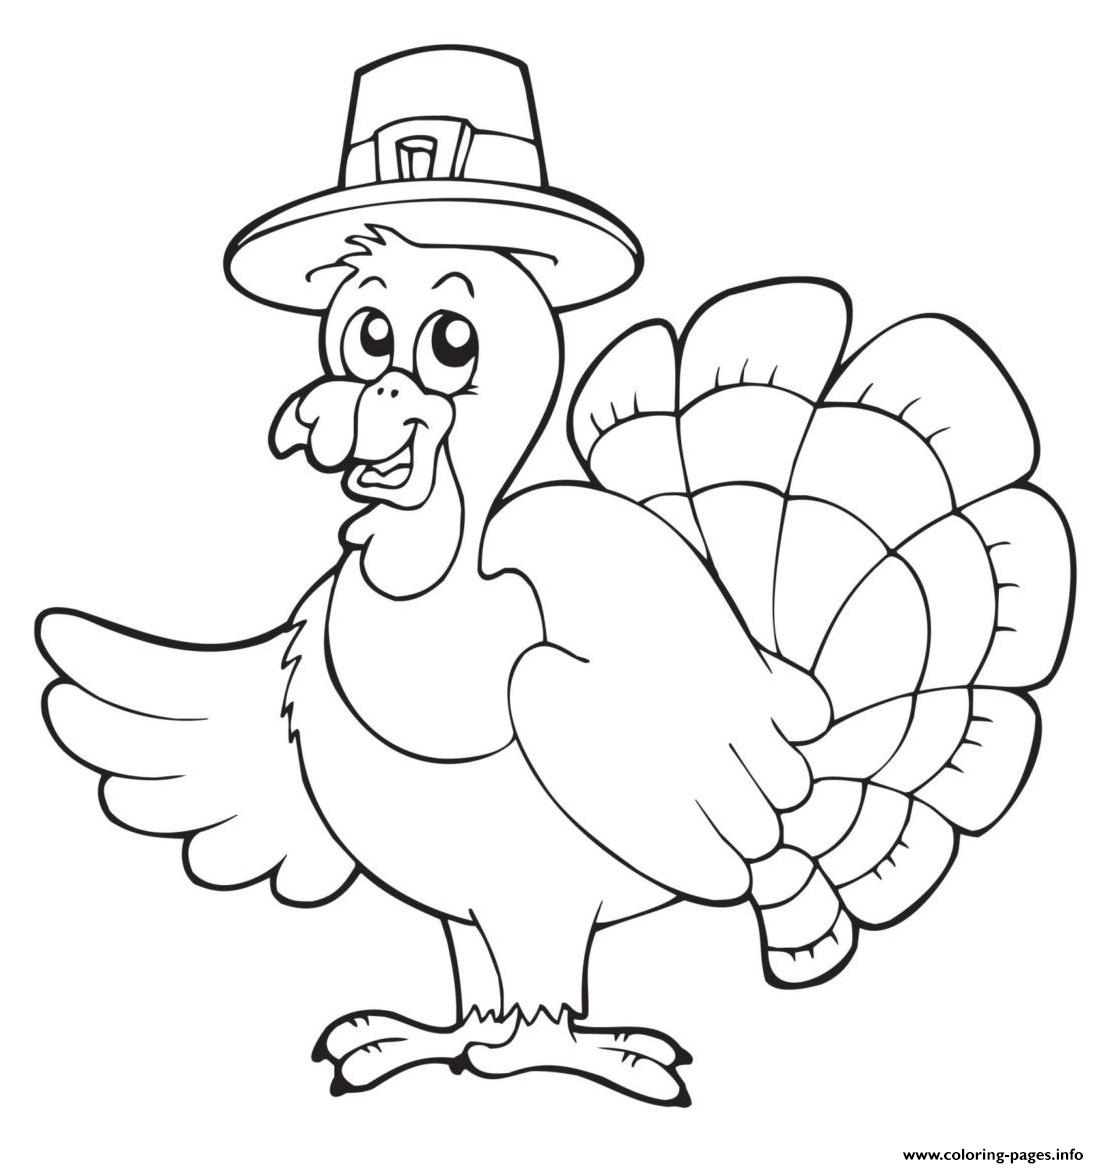 30+ Thanksgiving Coloring Pages - Free Printables | 1168x1099